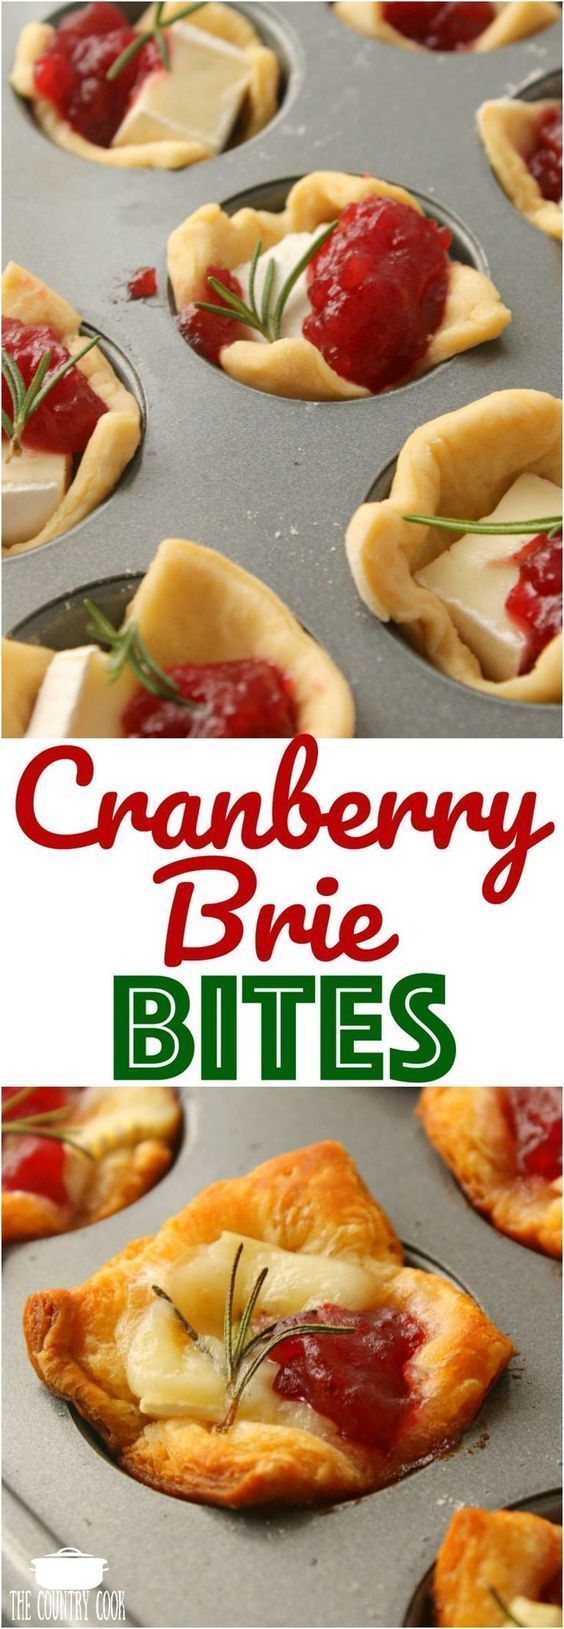 Cranberry Brie Bites – Different Food